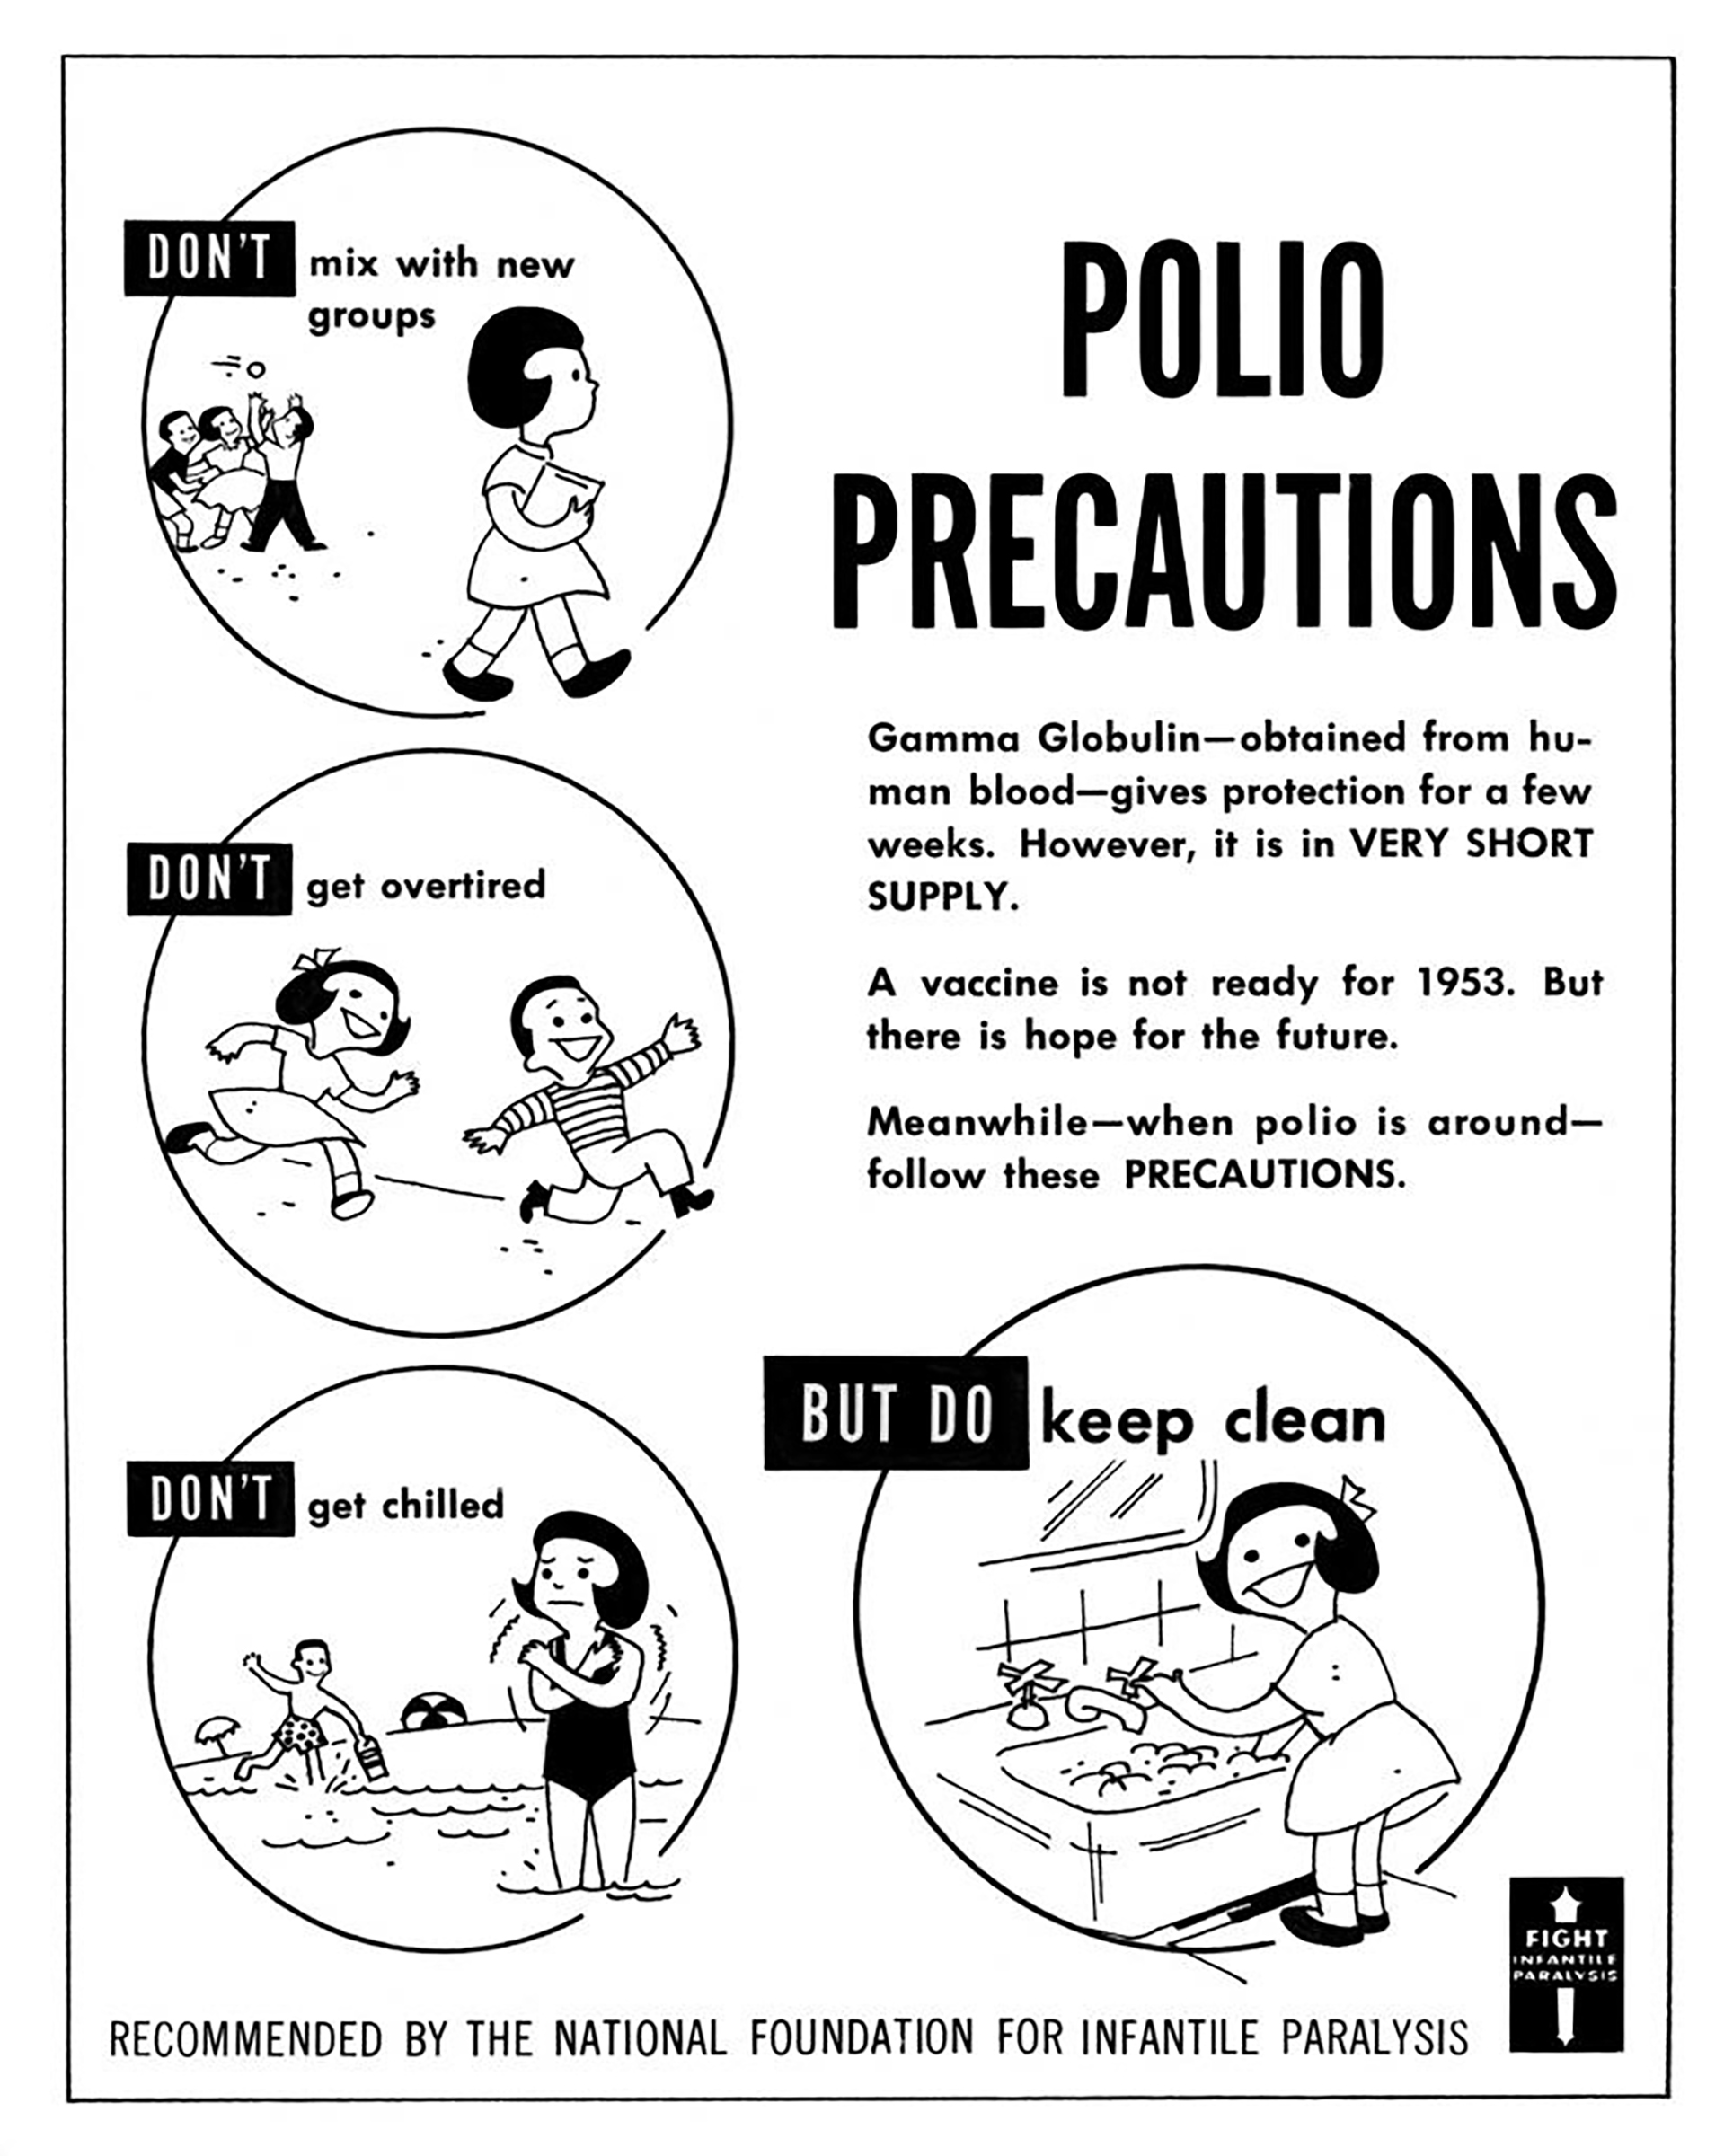 Polio Poster Cartoon developed by the National Foundation for Infantile Paralysis (early name for March of Dimes) in 1953